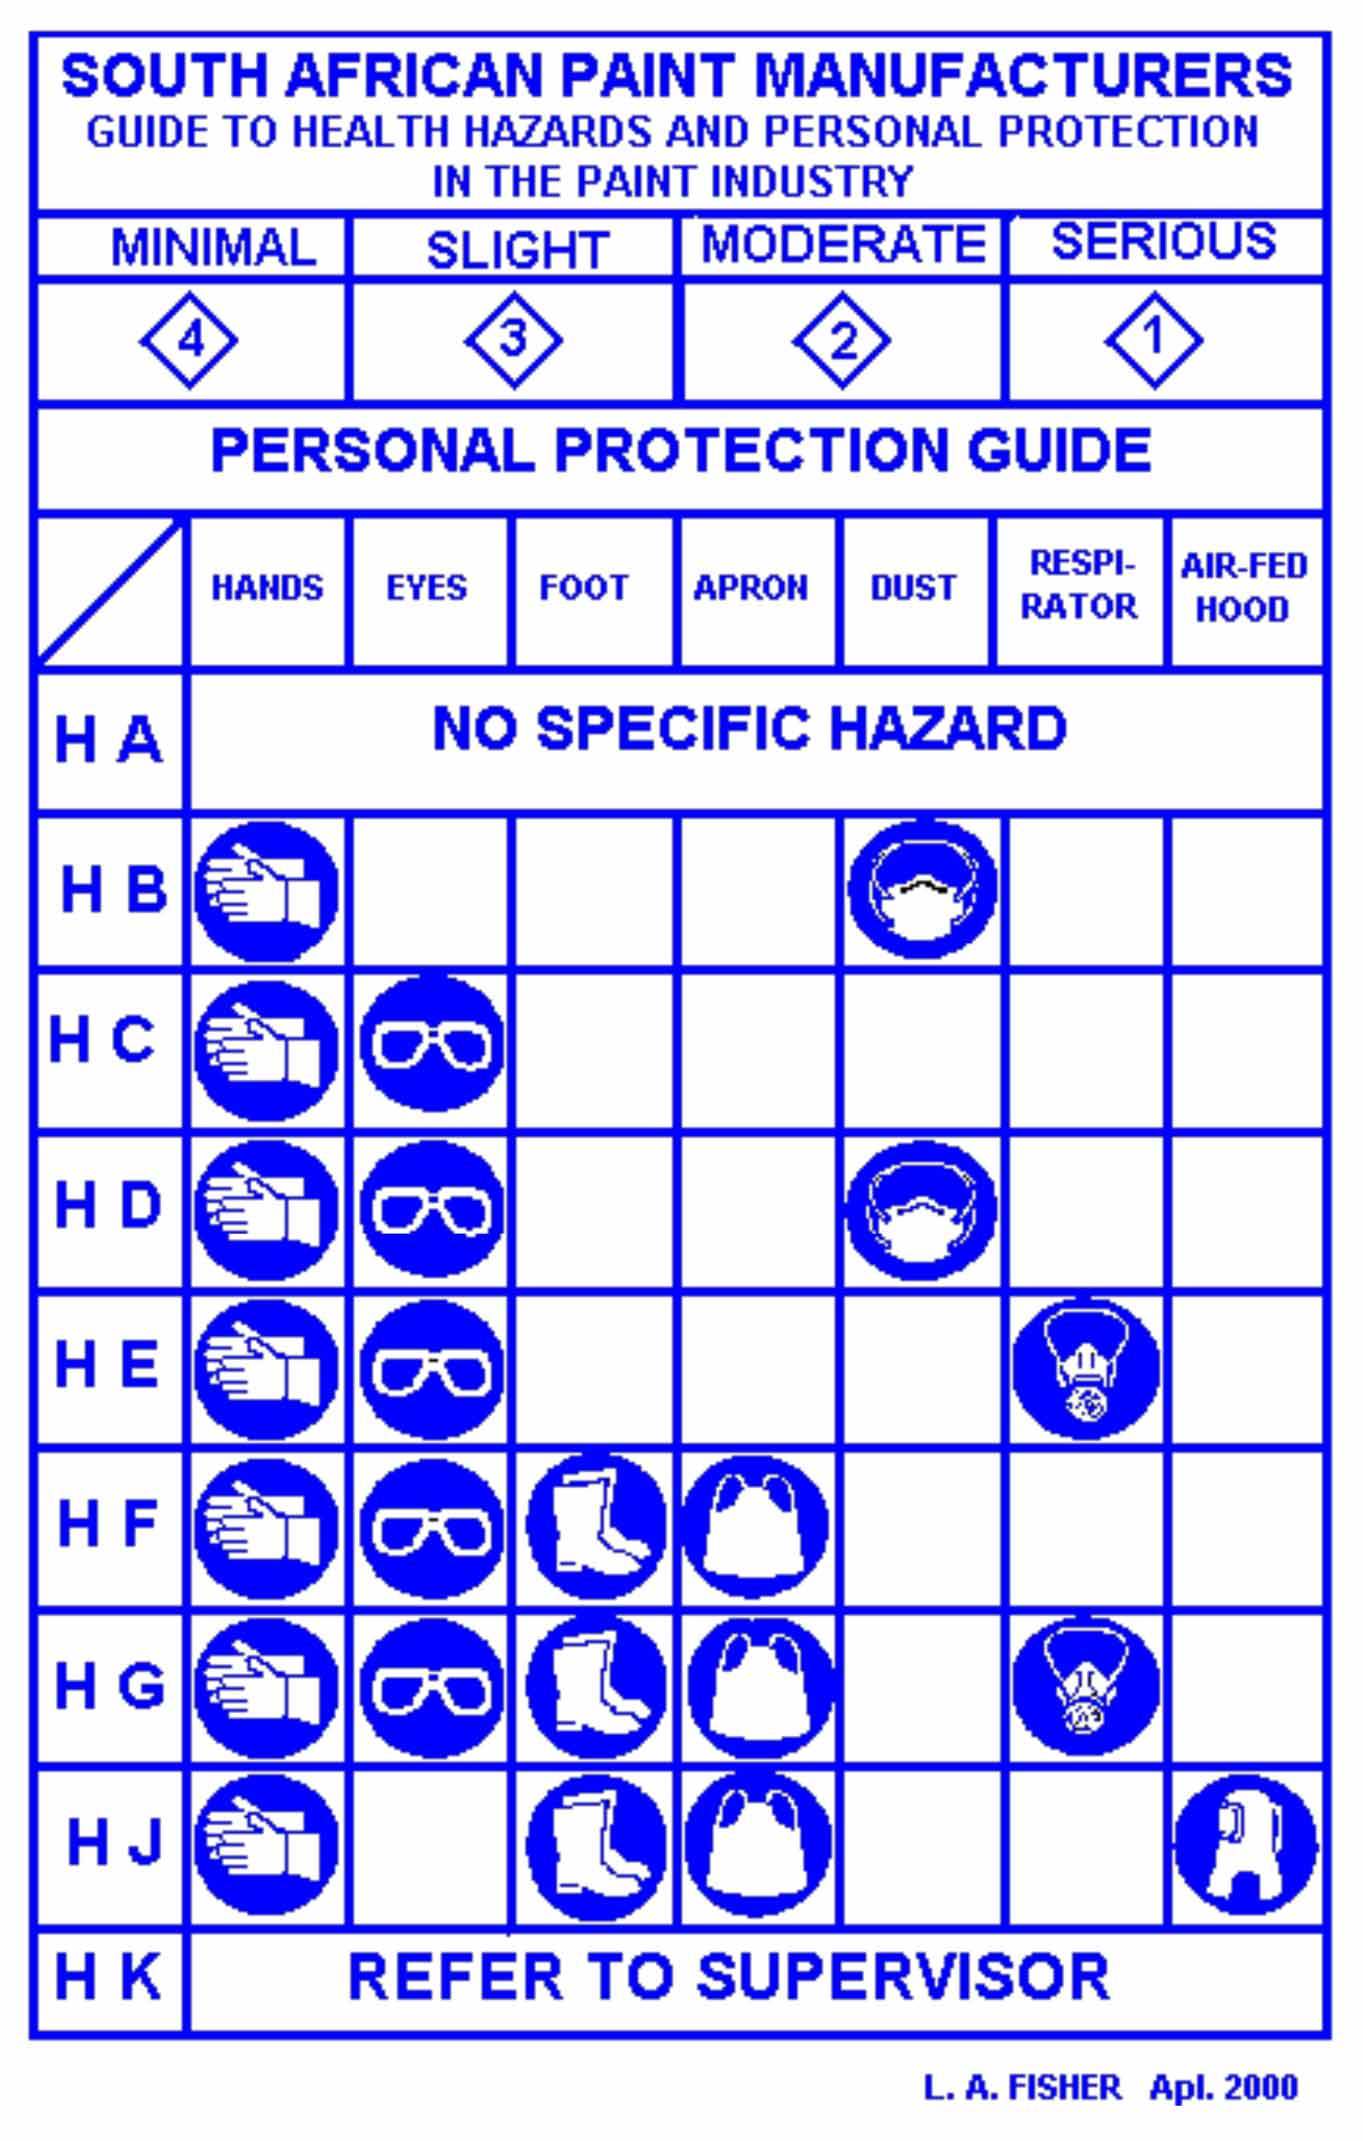 Safe handling of chemicals occa sa paint manufacturer protection guide buycottarizona Gallery